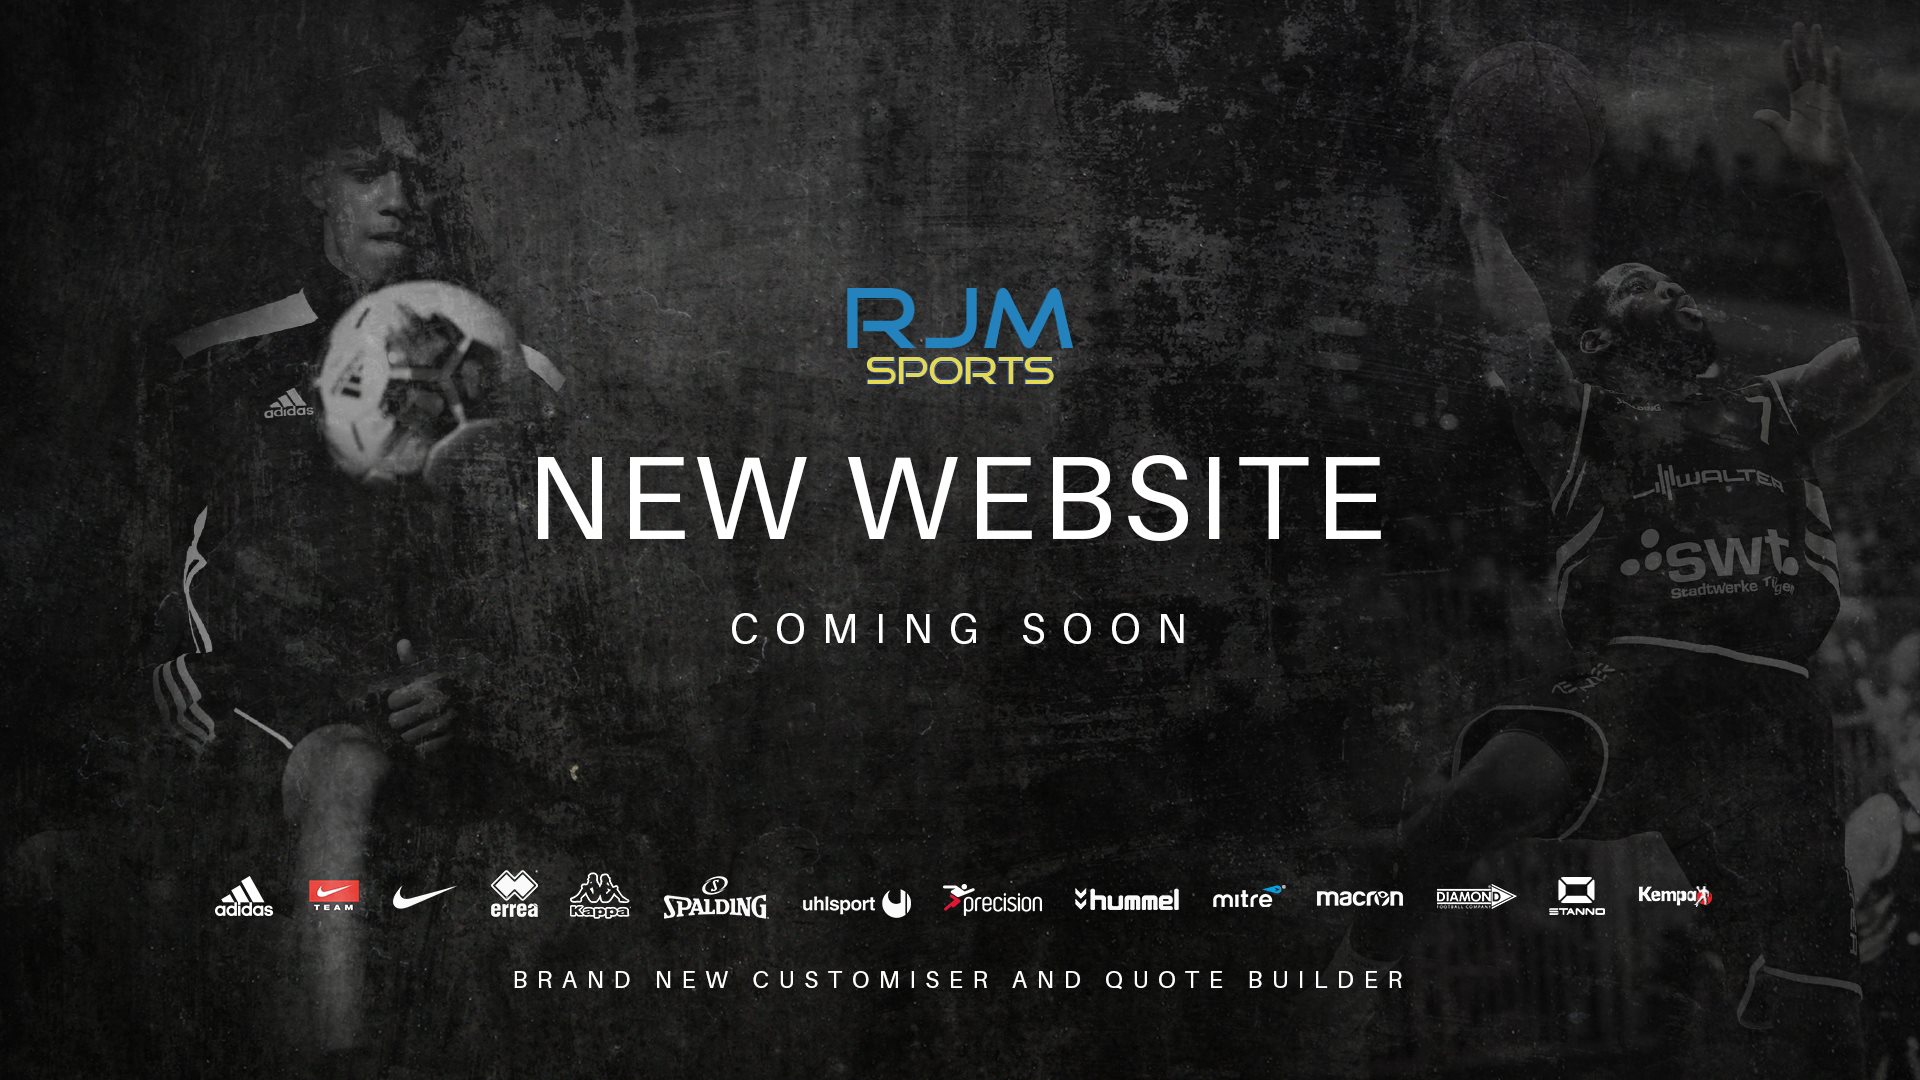 <a href='/newsdetail/ID/615'>RJM Sports New Website Launch & Adidas Football Competition</a>